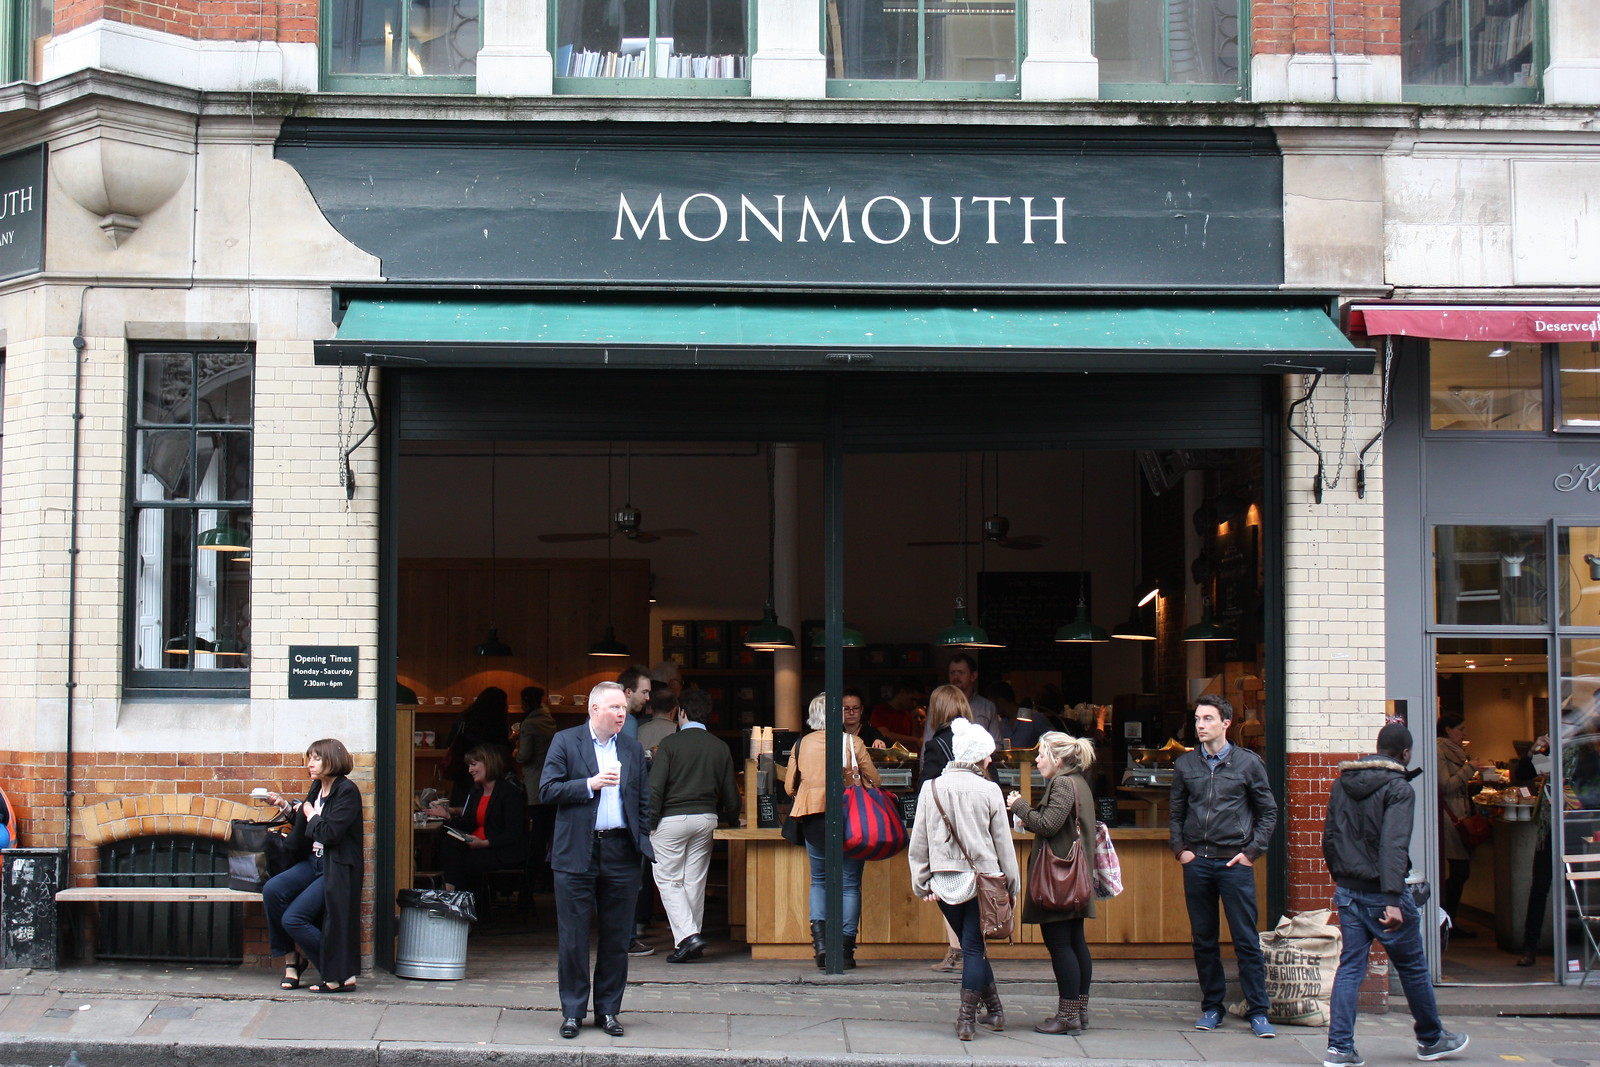 Monmouth London